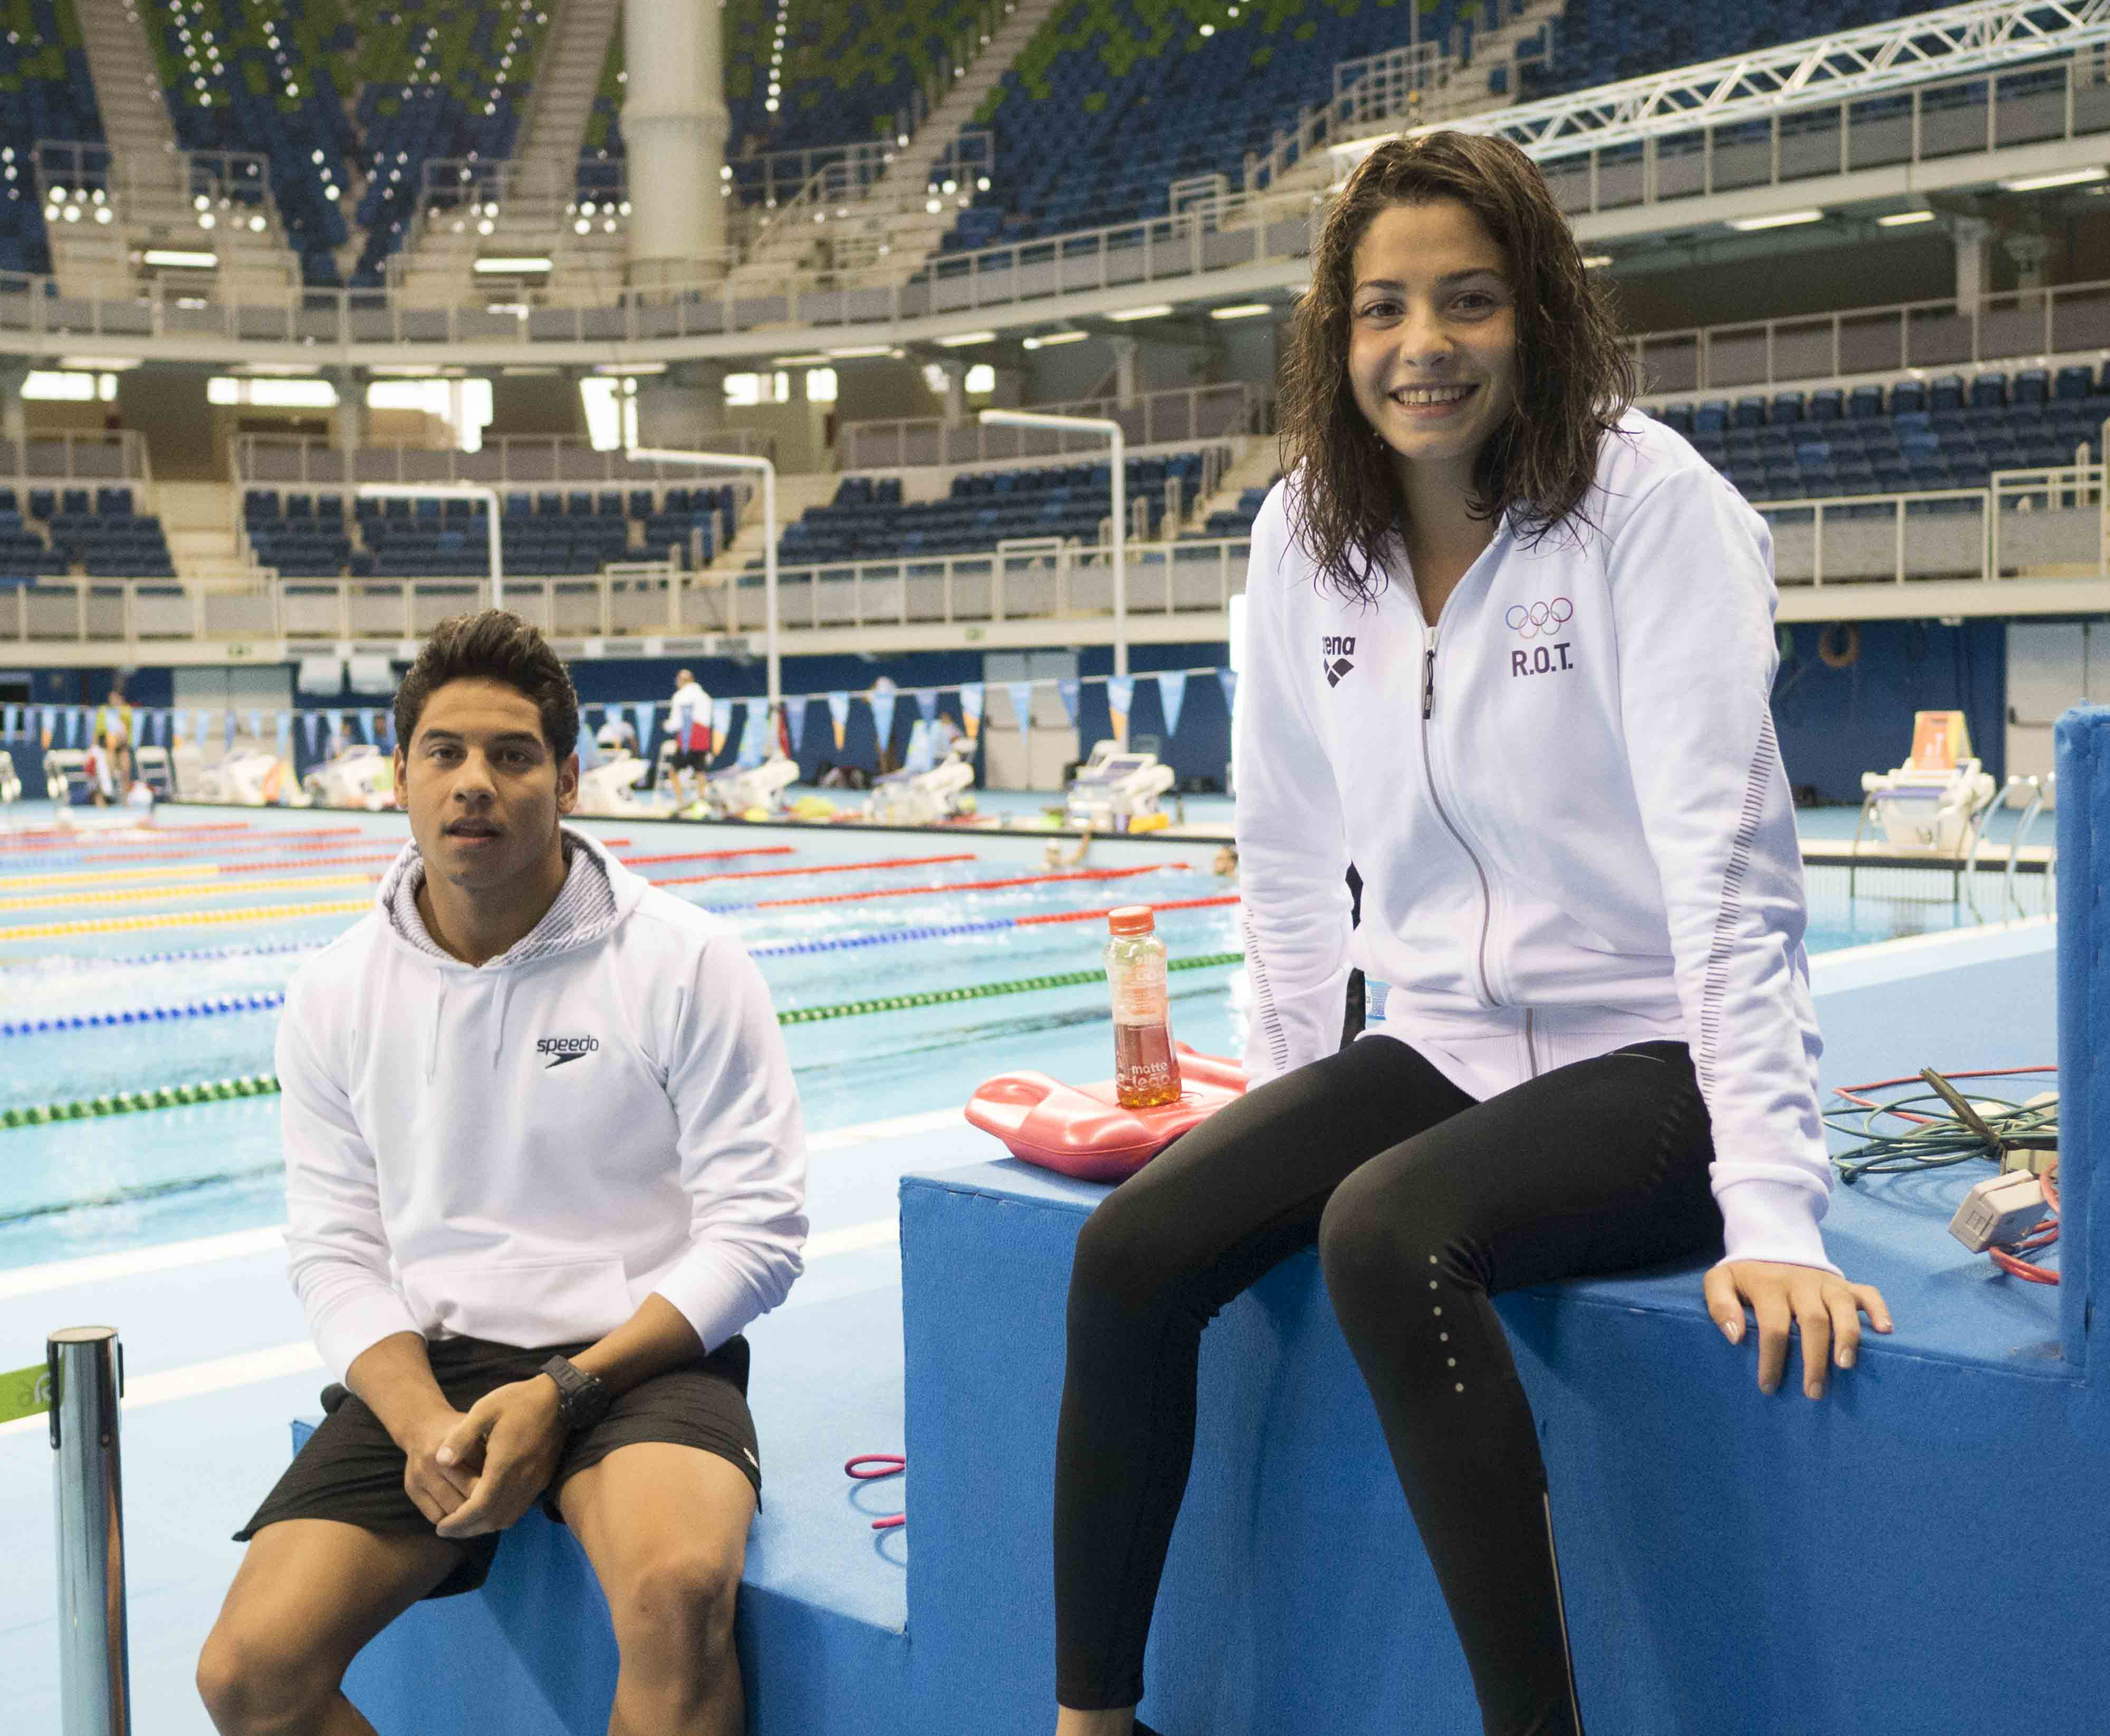 Refugee Team Swimmers:Rami Anis & Yusra Mardini at training poolstretching and swimming lapsRami Coach: Carine VerbauenYusra Coach: Sven Spannekrebsvisiting the Competition Pool after practice